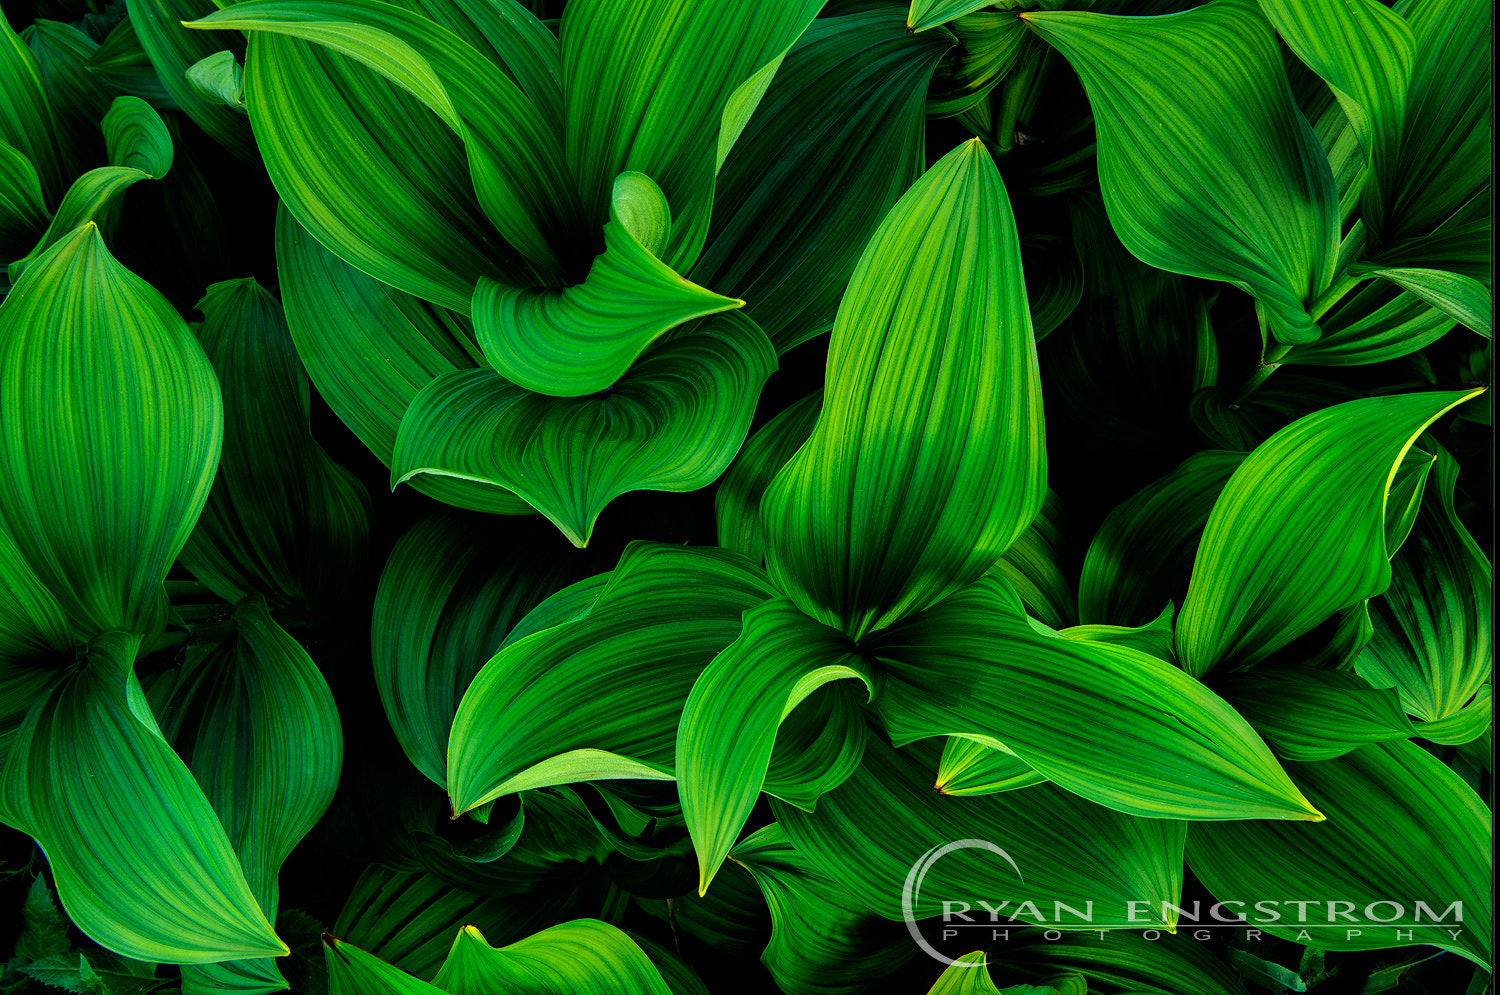 Photograph Corn Lily by Ryan Engstrom on 500px